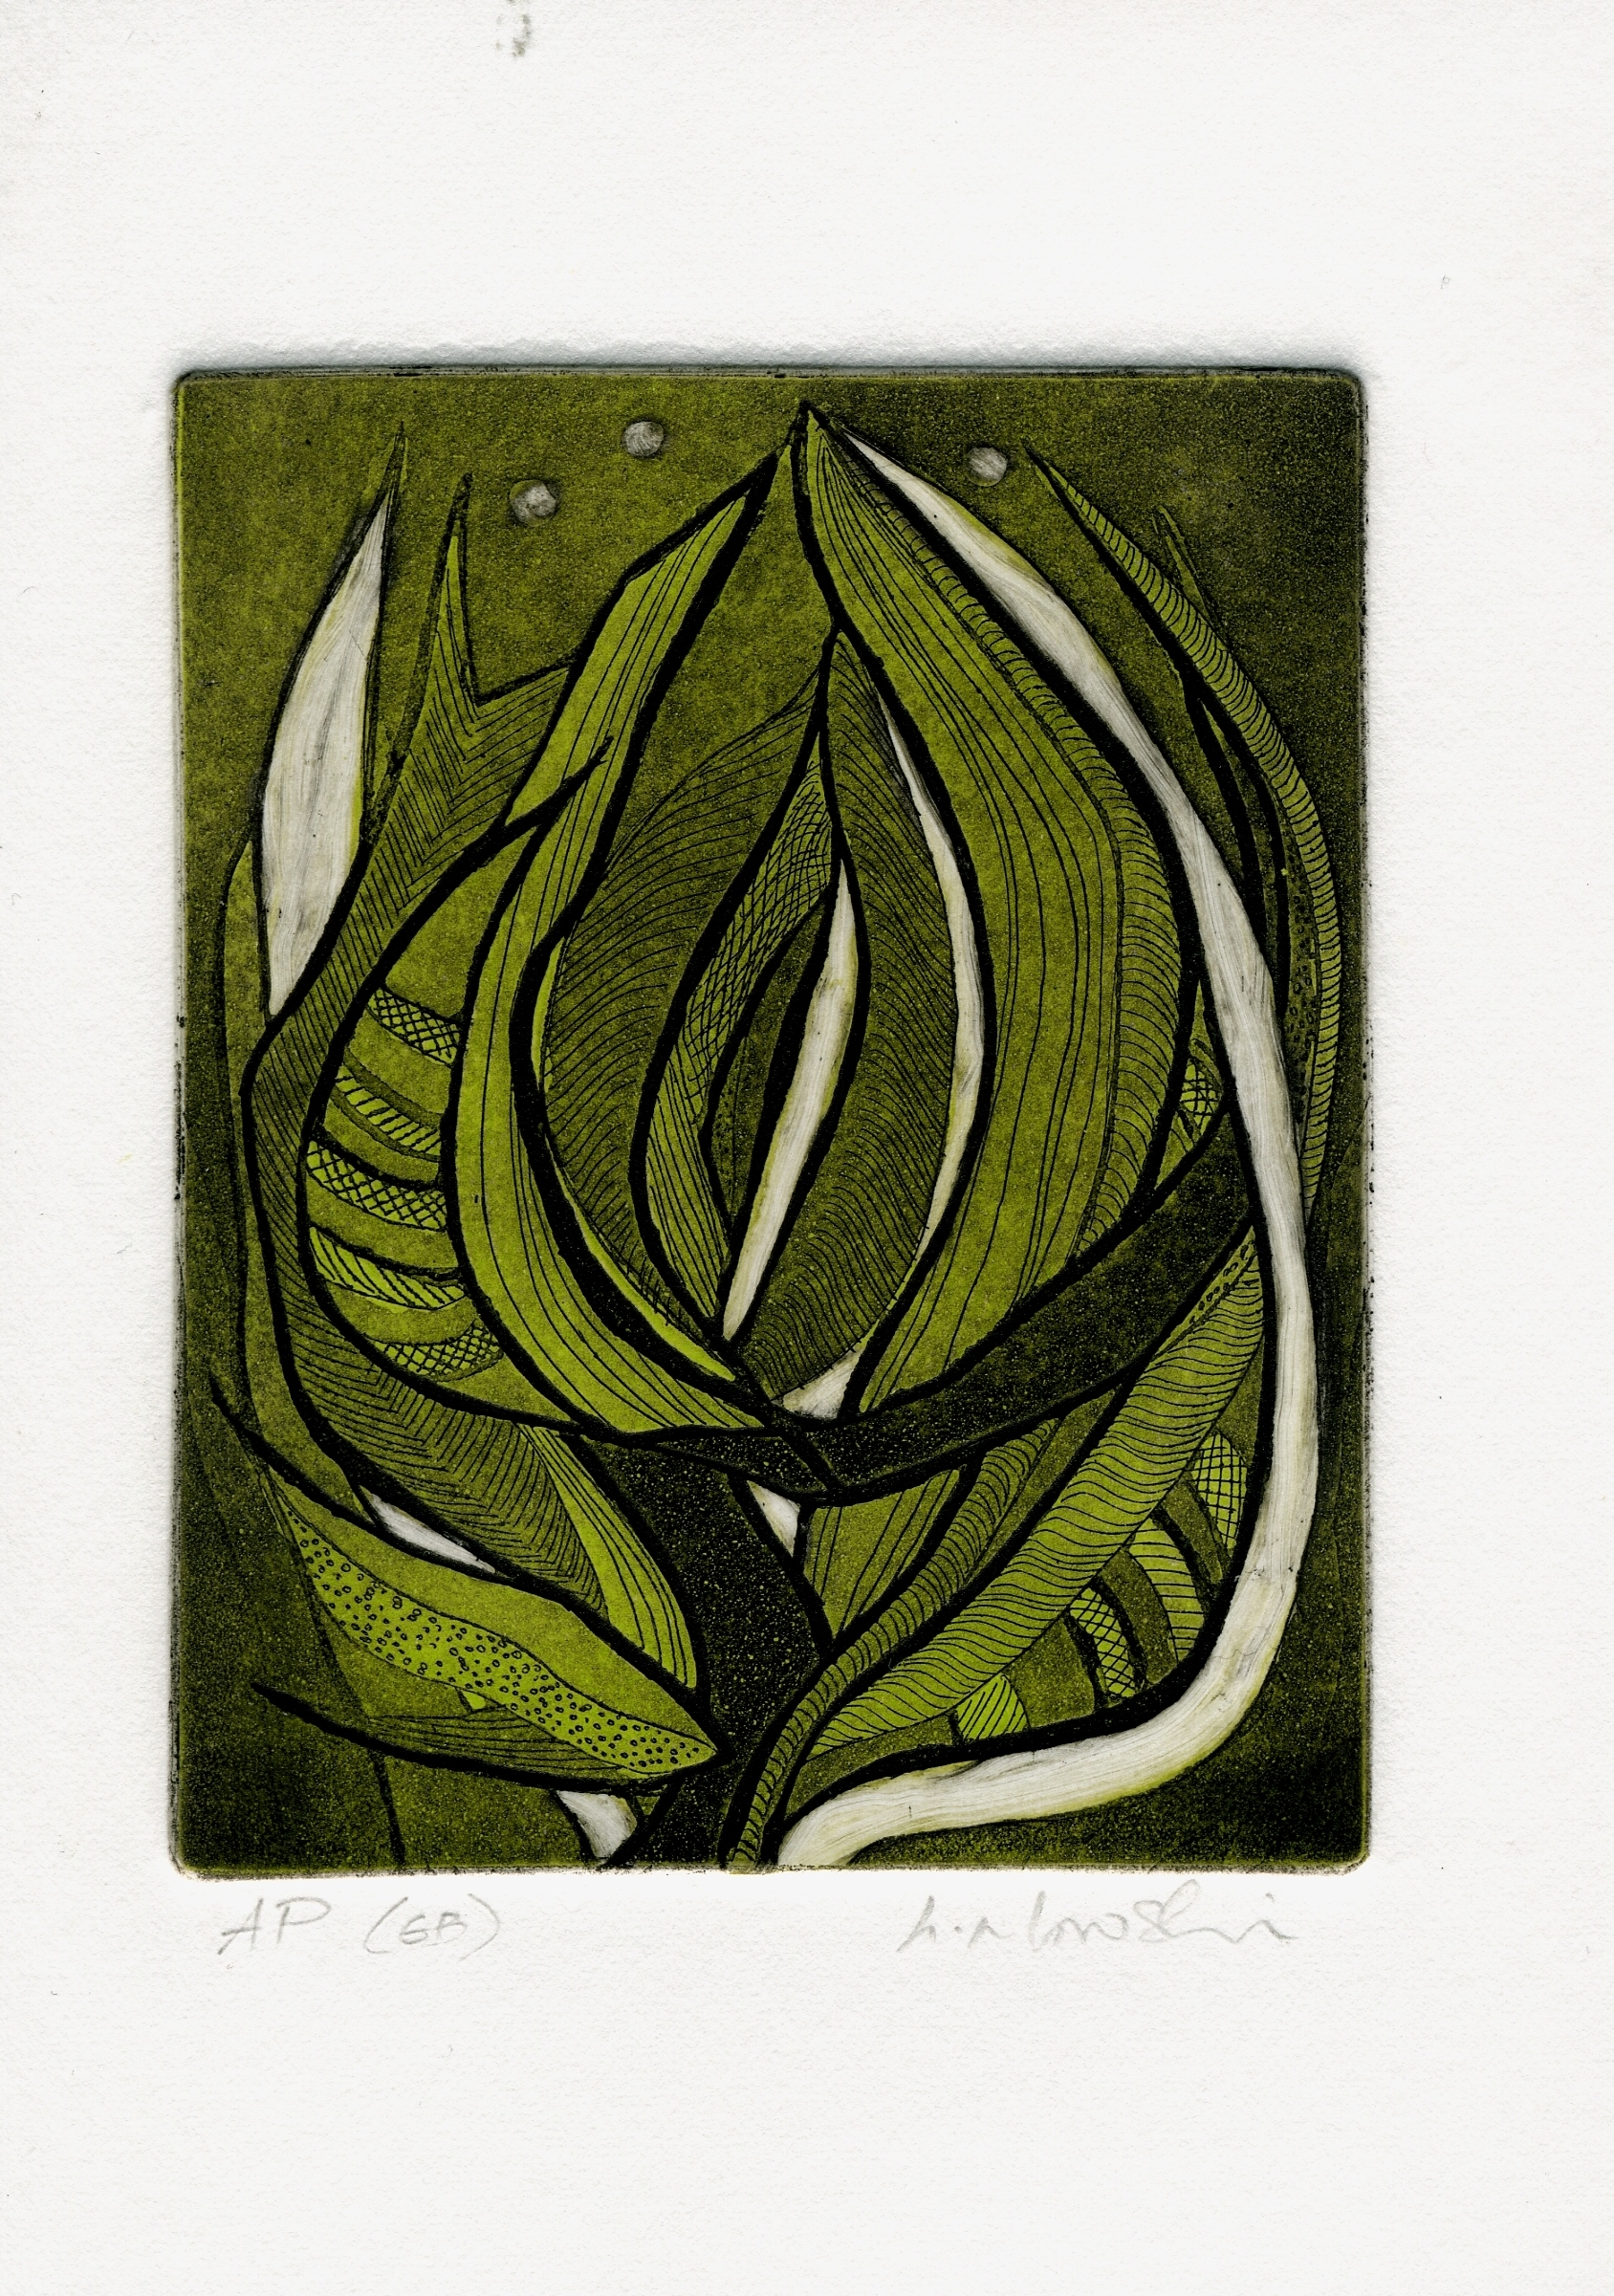 Budding-in-Gr-and-Bk_-intaglio-limited-edition